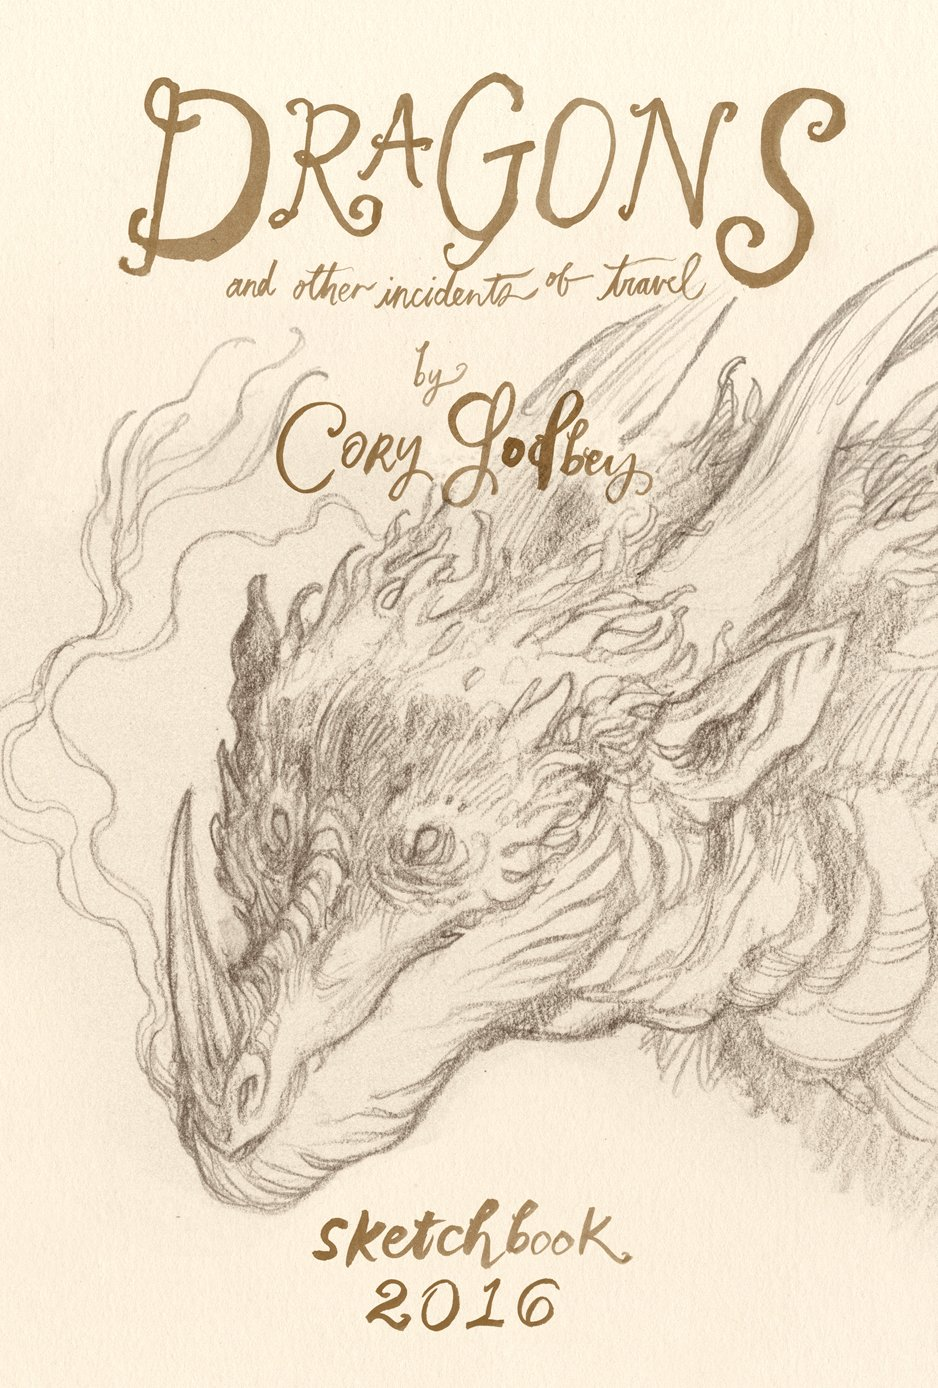 Cory Godbey creates his beautiful annual sketchbooks filled with personal work based on a theme or story.